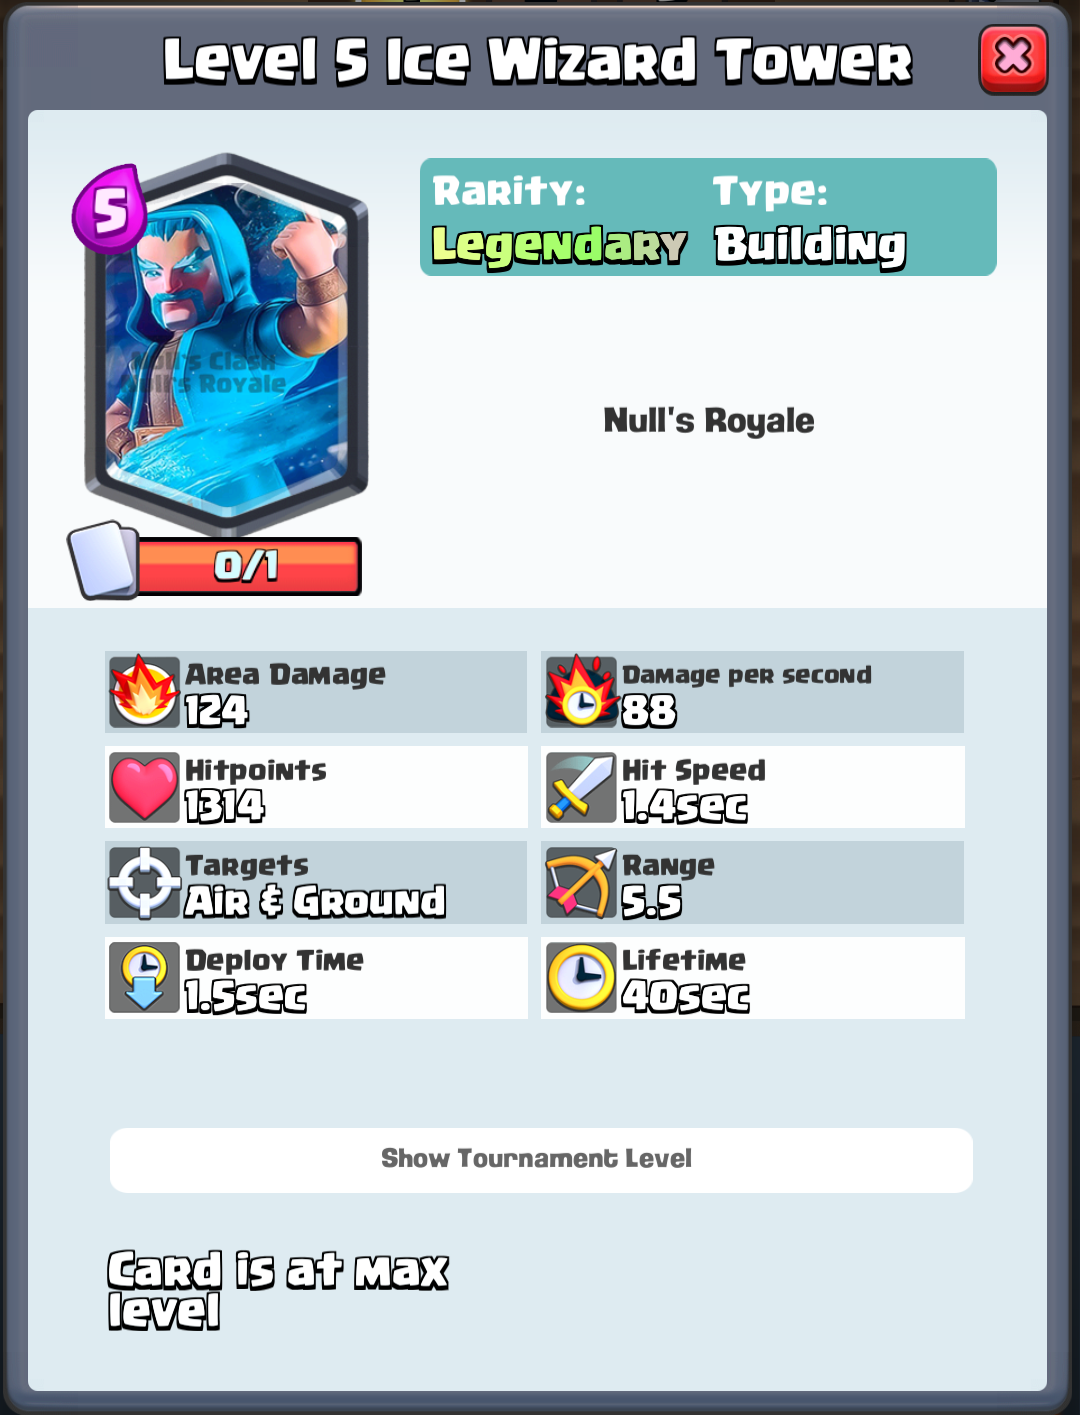 Ice Wizard Tower - Nulls Royale